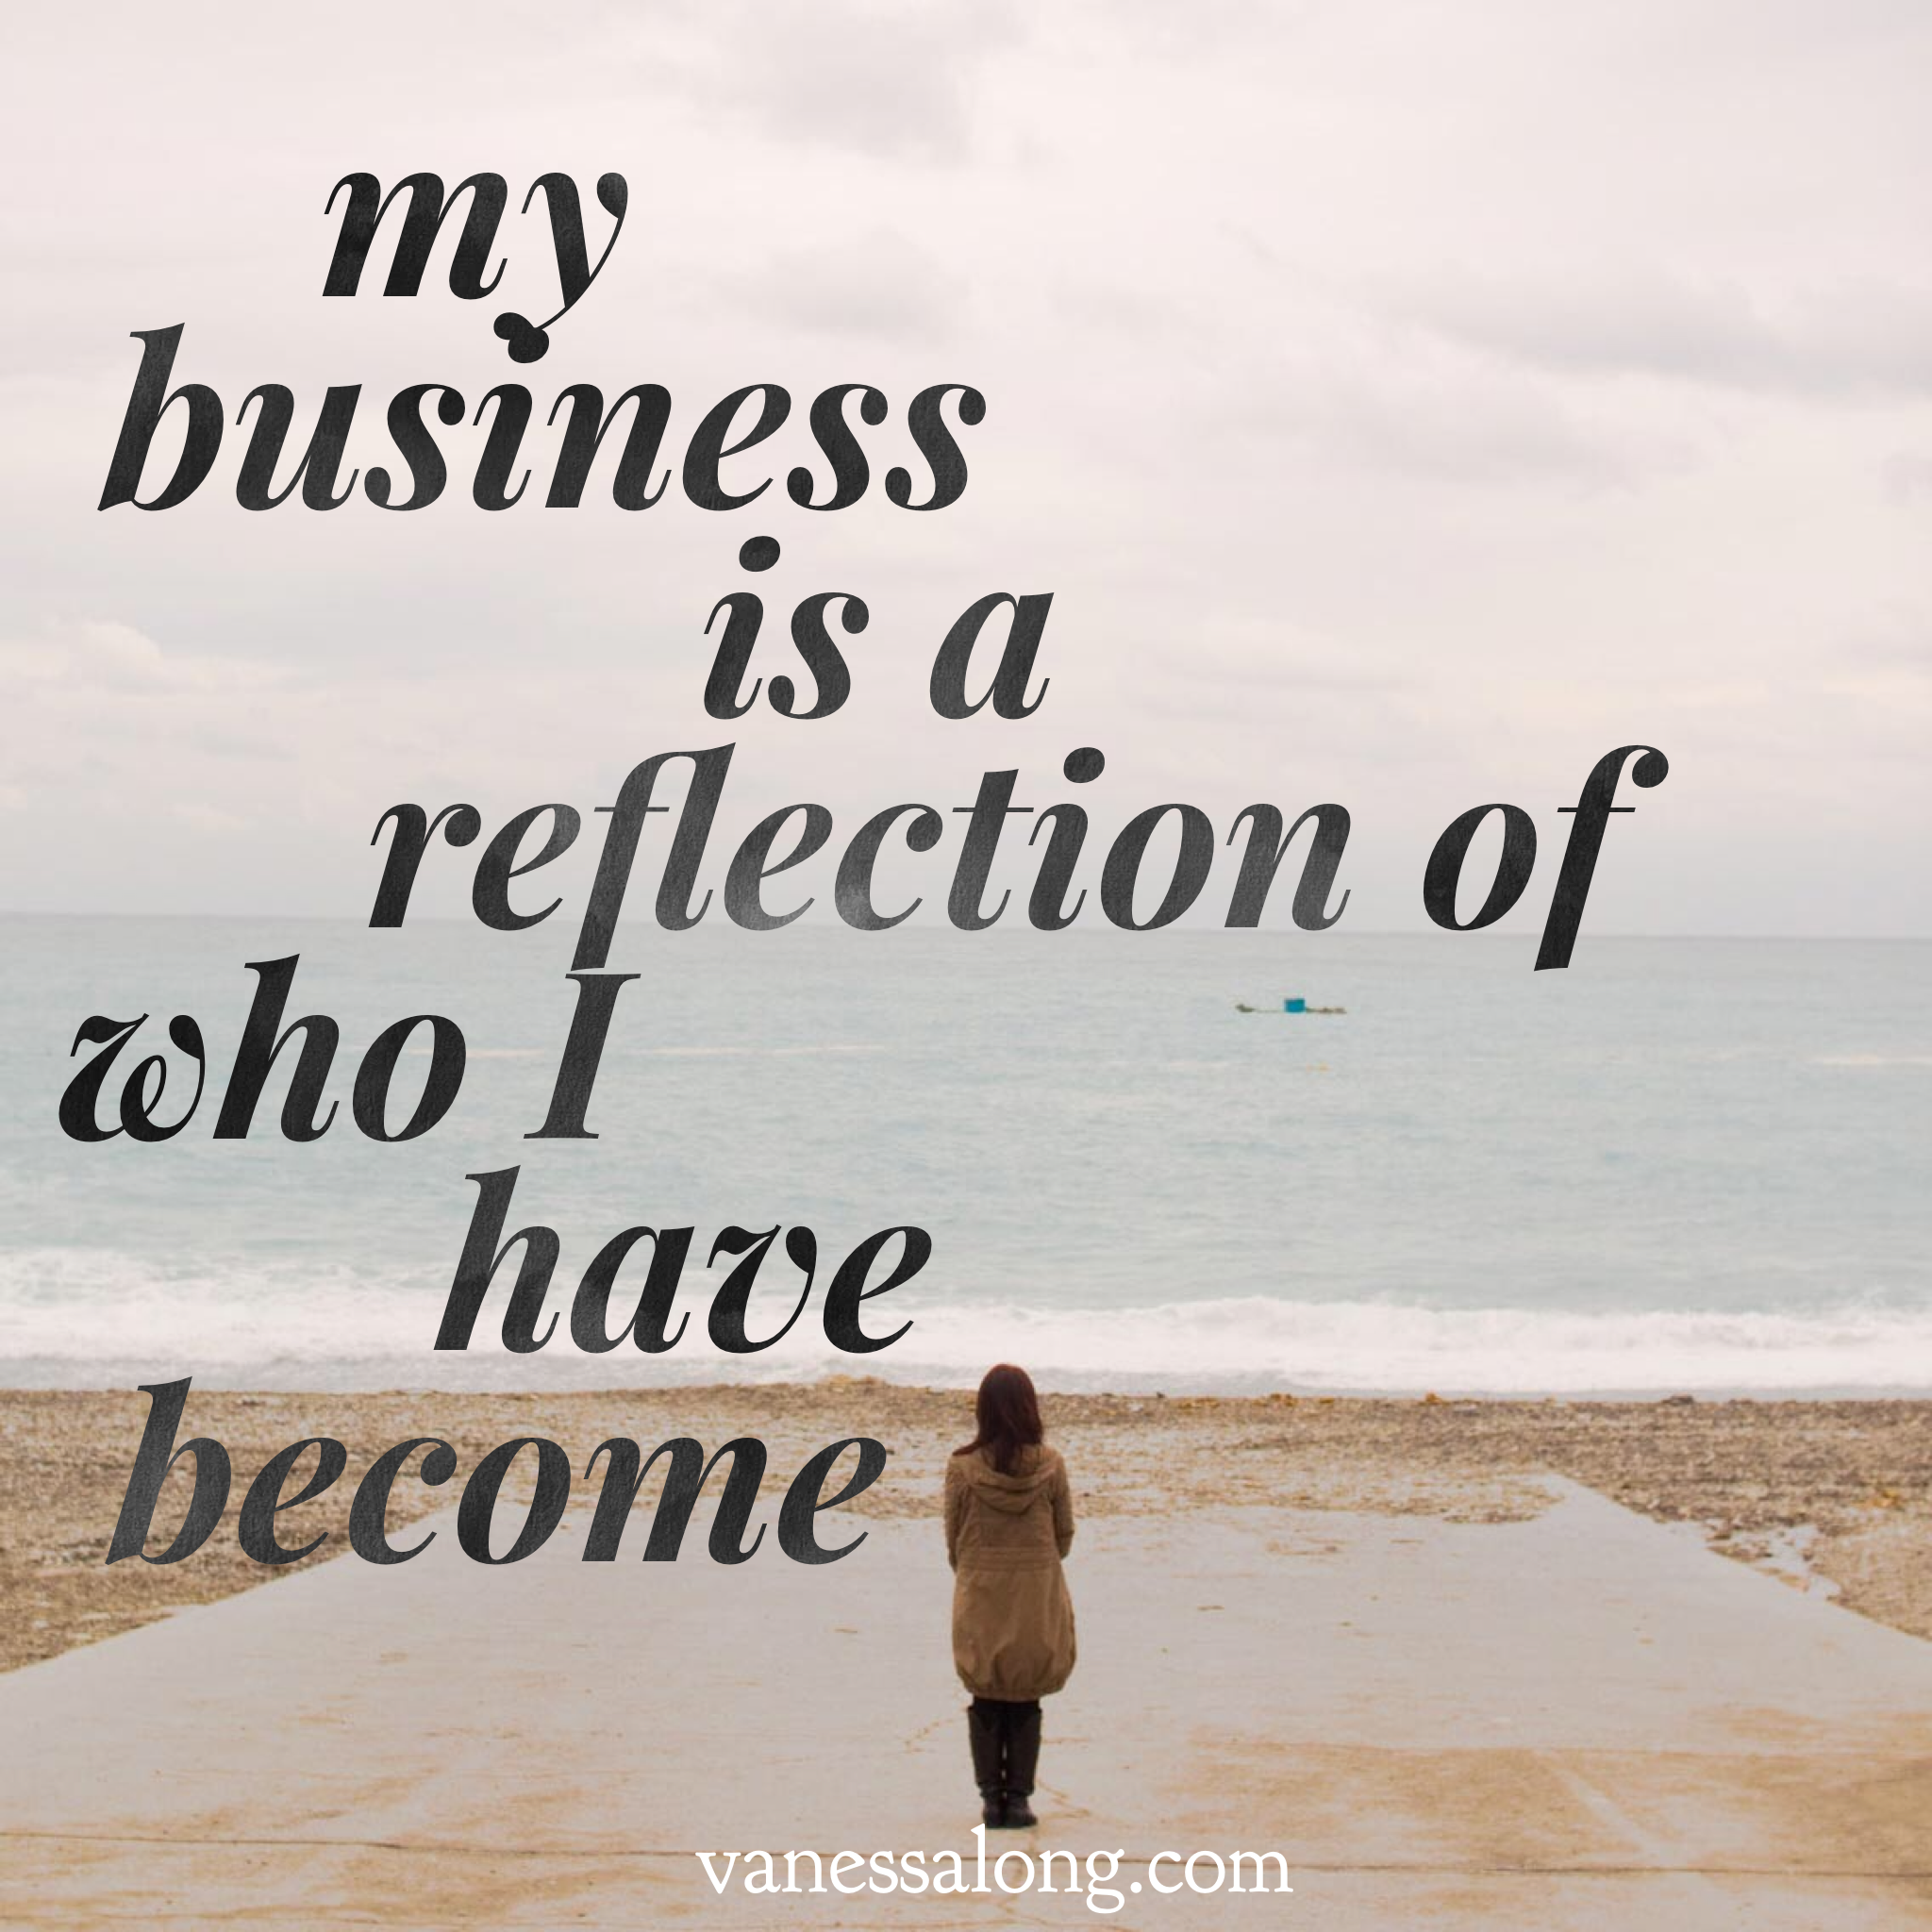 my business is a reflection of who I have become